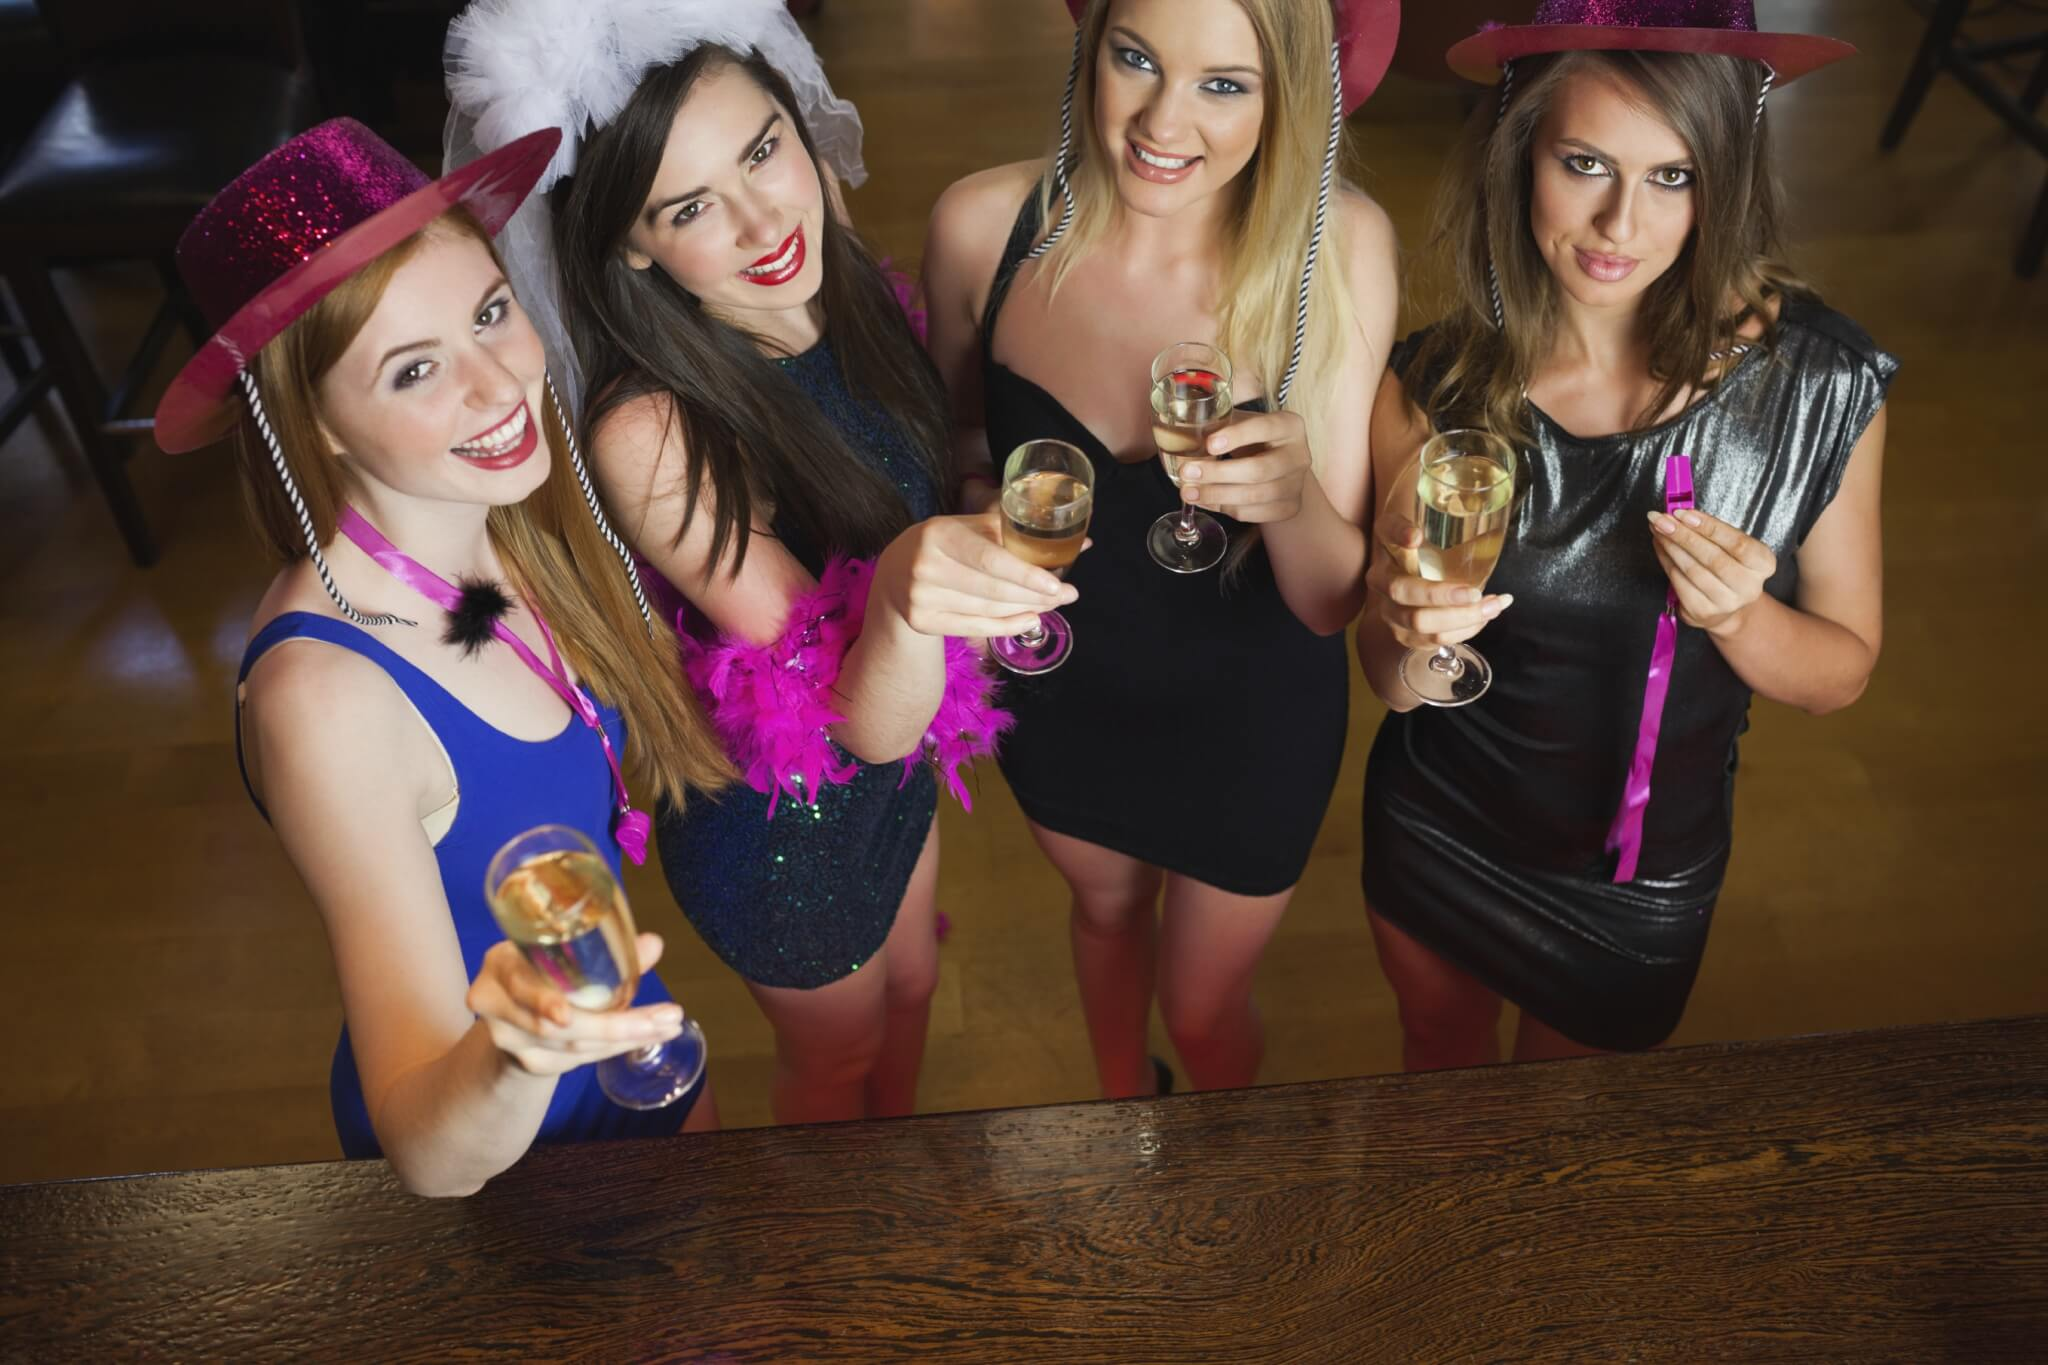 Happy-gorgeous-women-holding-flutes-of-champagne-having-hen-part-000044321098_Large-1.jpg.jpeg